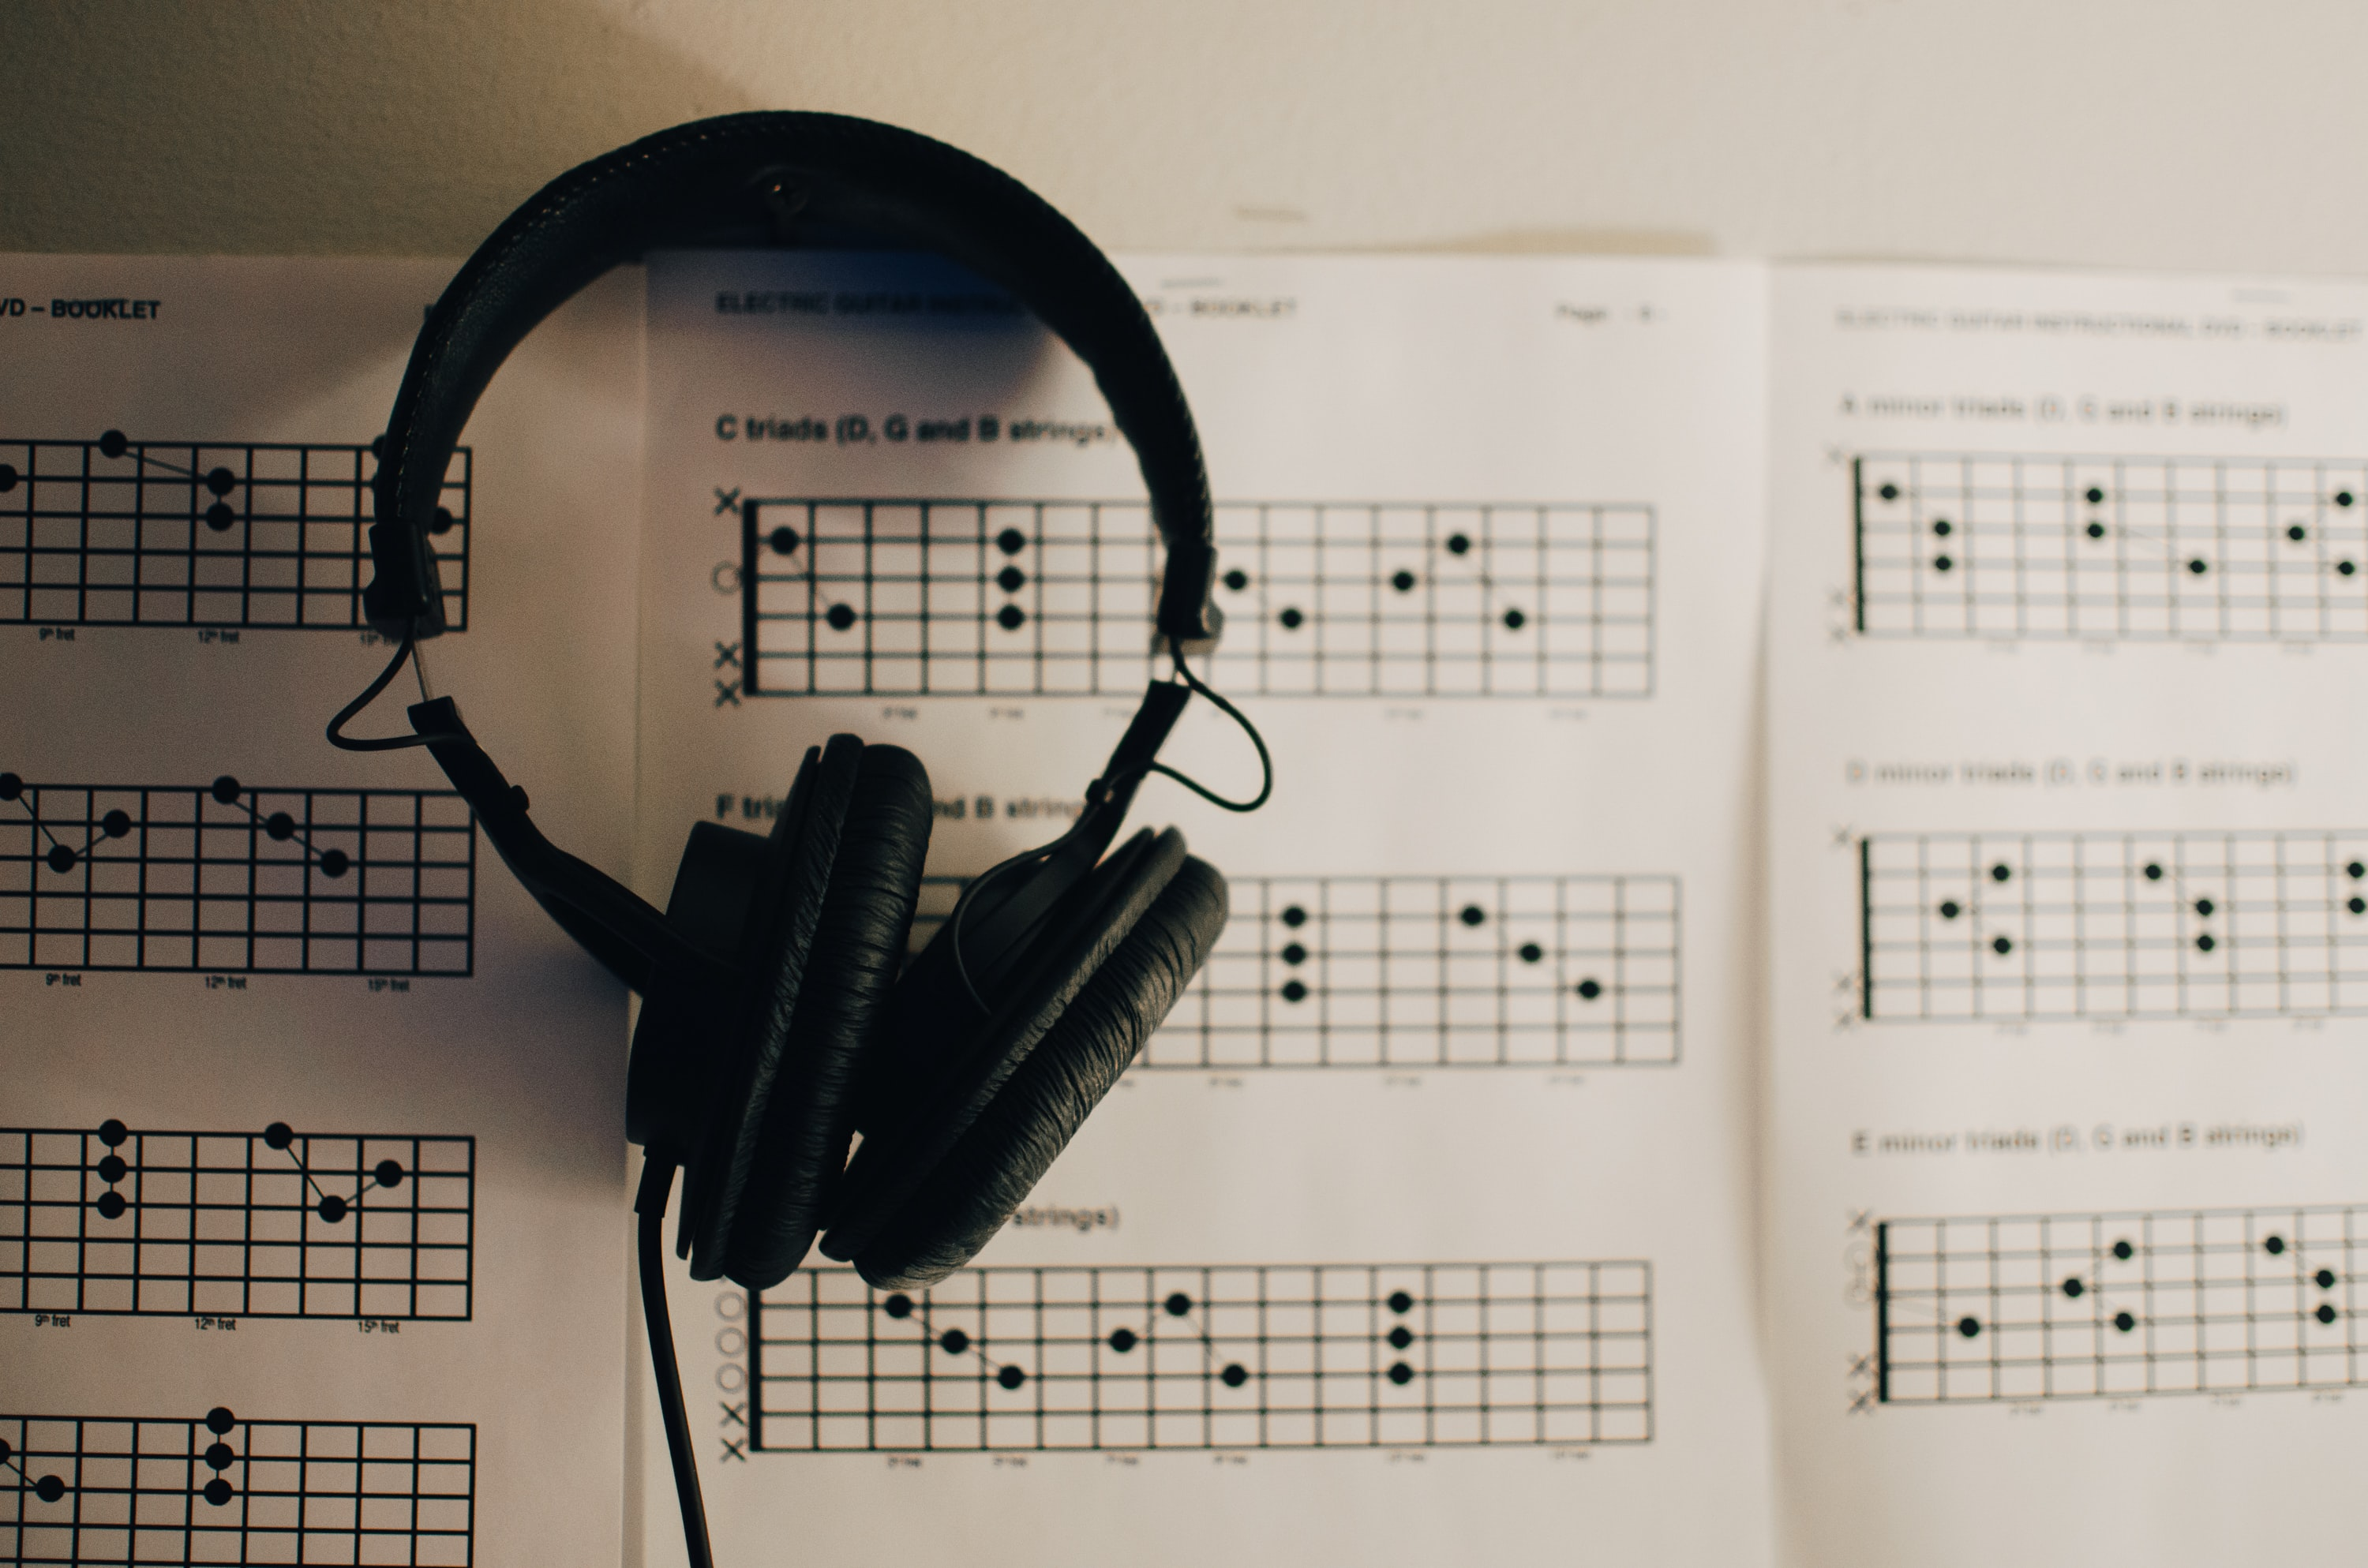 An overhead shot of black headphones on guitar chord charts